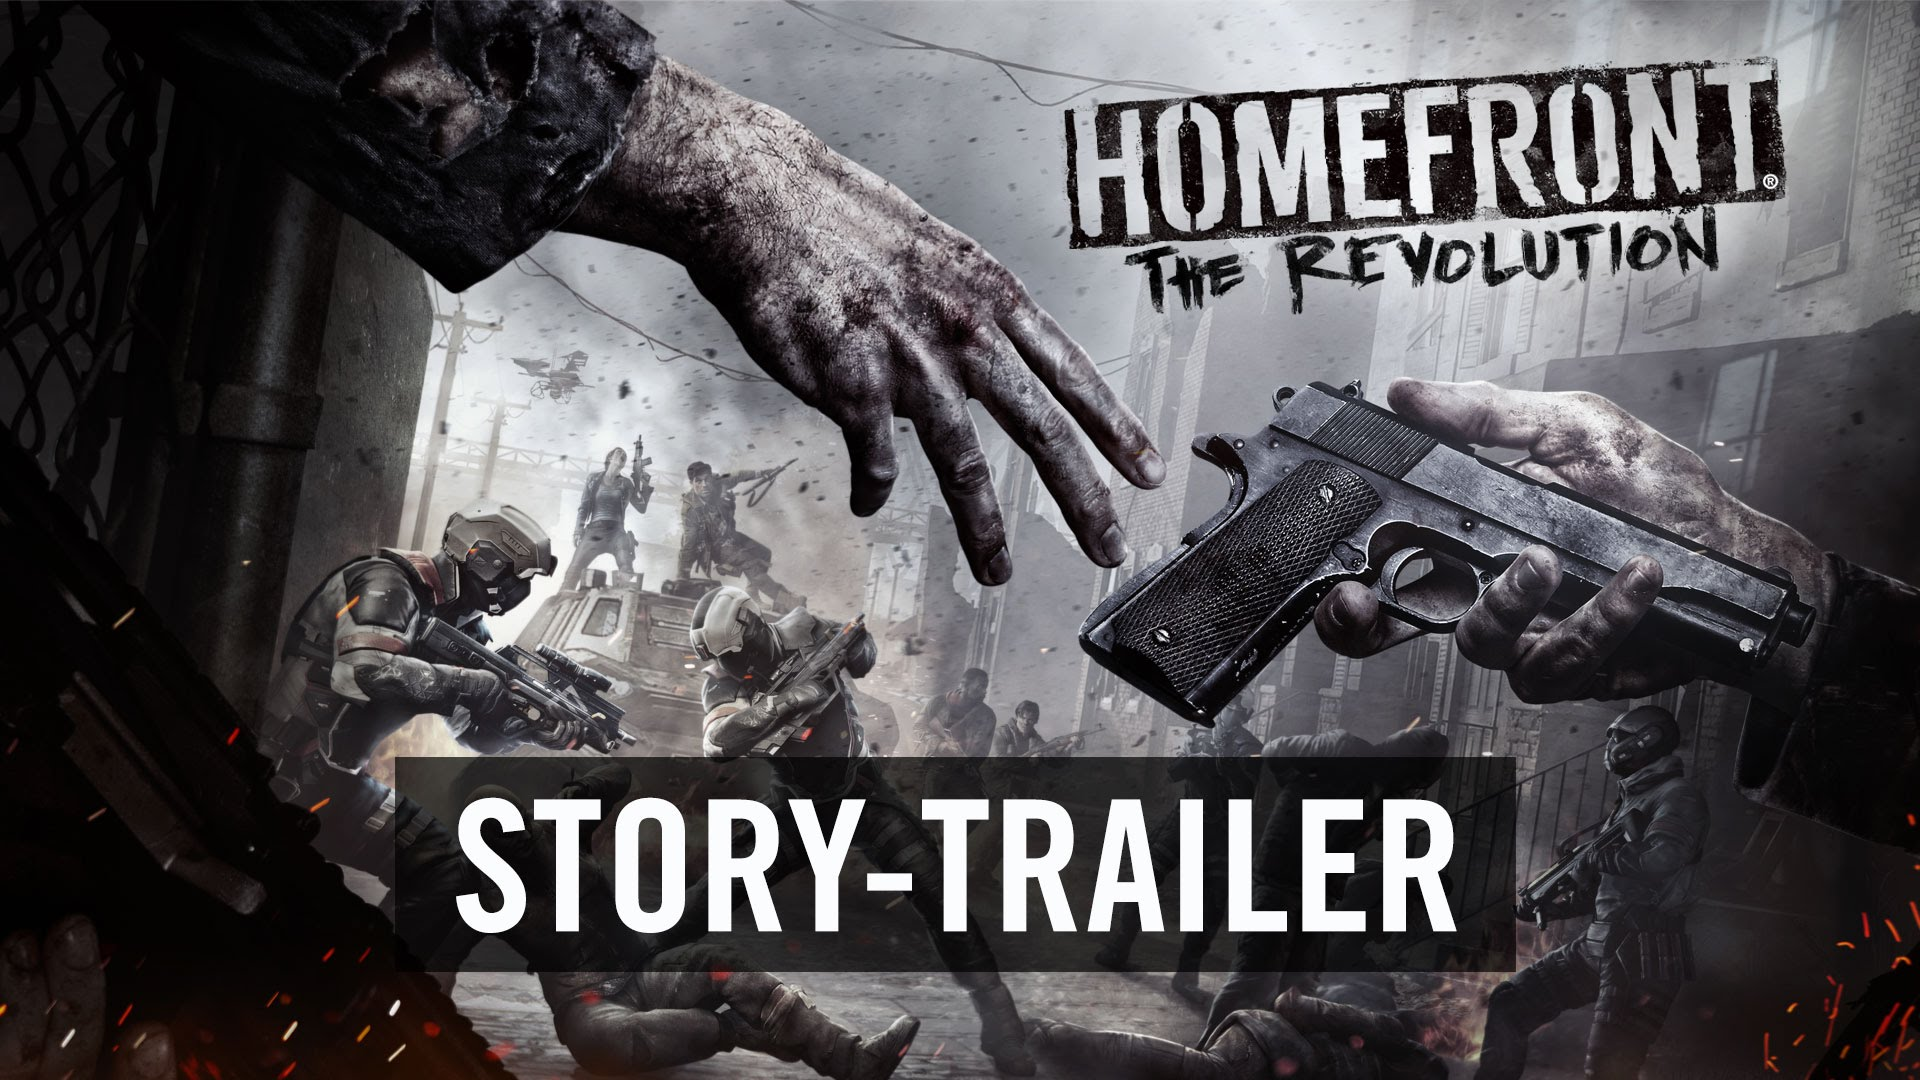 homefront_the_revolution_story_trailer